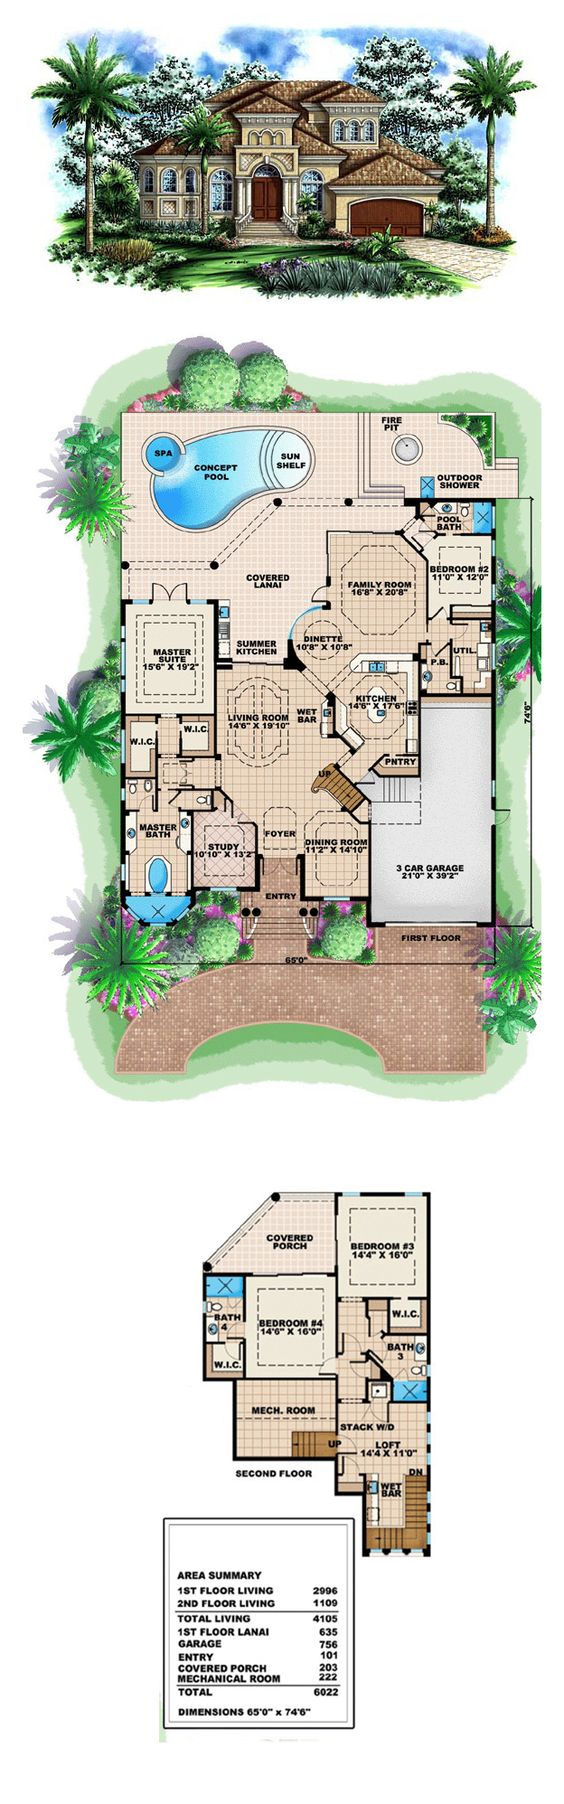 Florida mediterranean house plan 60437 florida houses for Florida mediterranean house plans